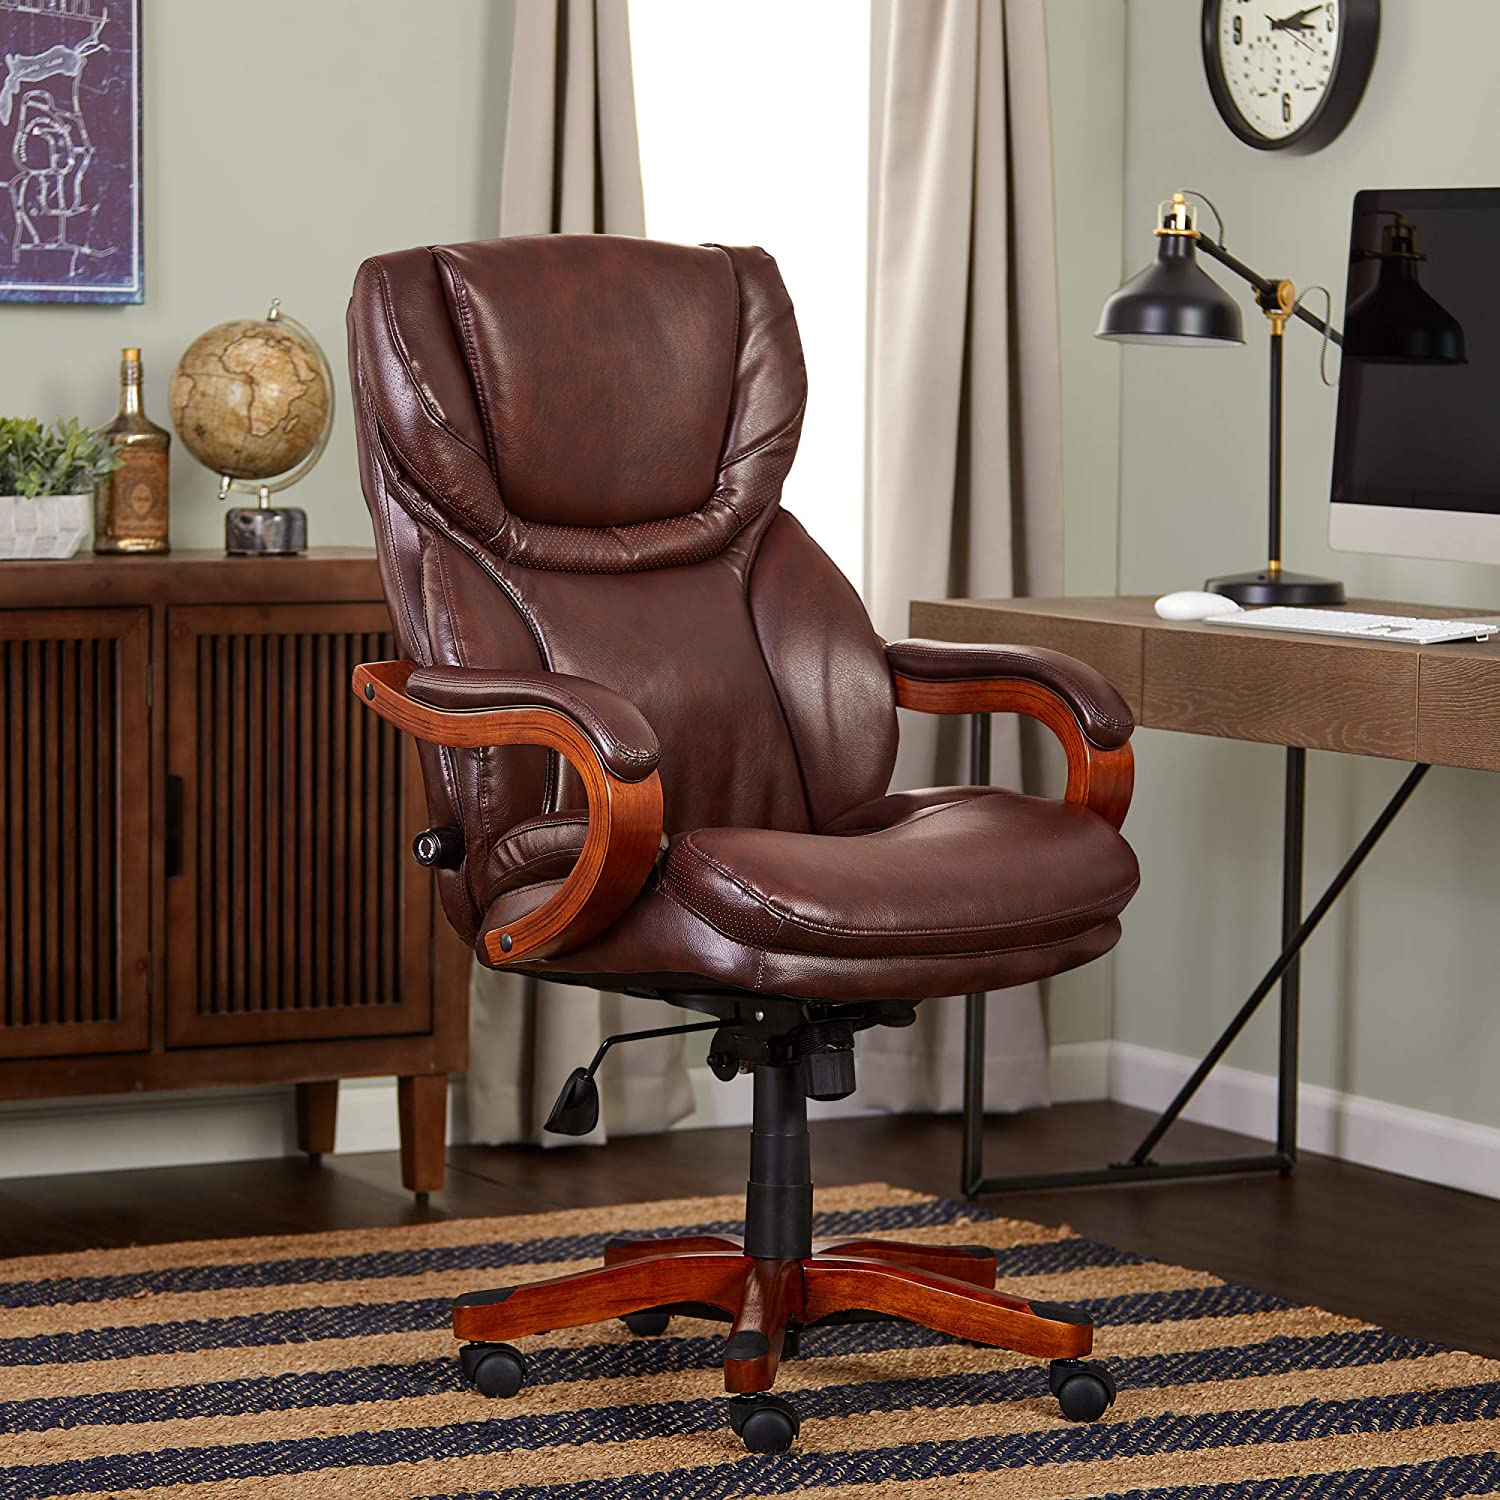 Serta Bonded Leather Big & Tall Executive Chair, Brown